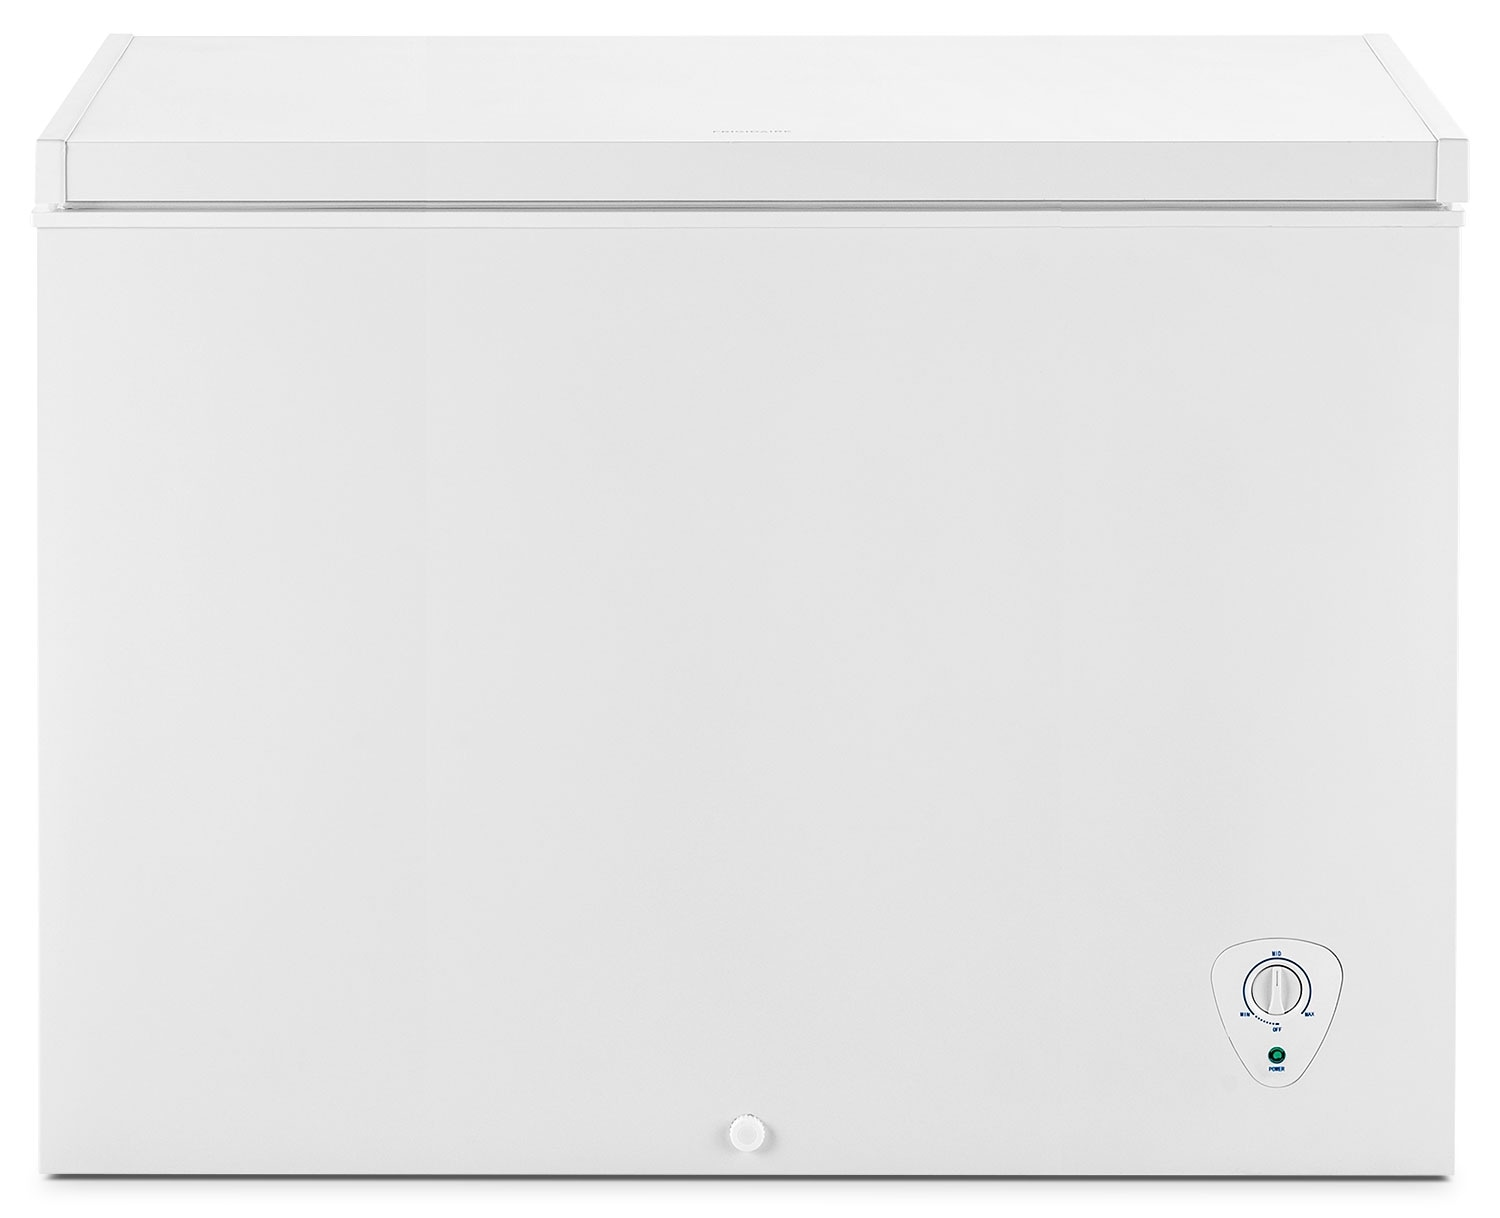 Frigidaire 8.7 Cu. Ft. Chest Freezer – White